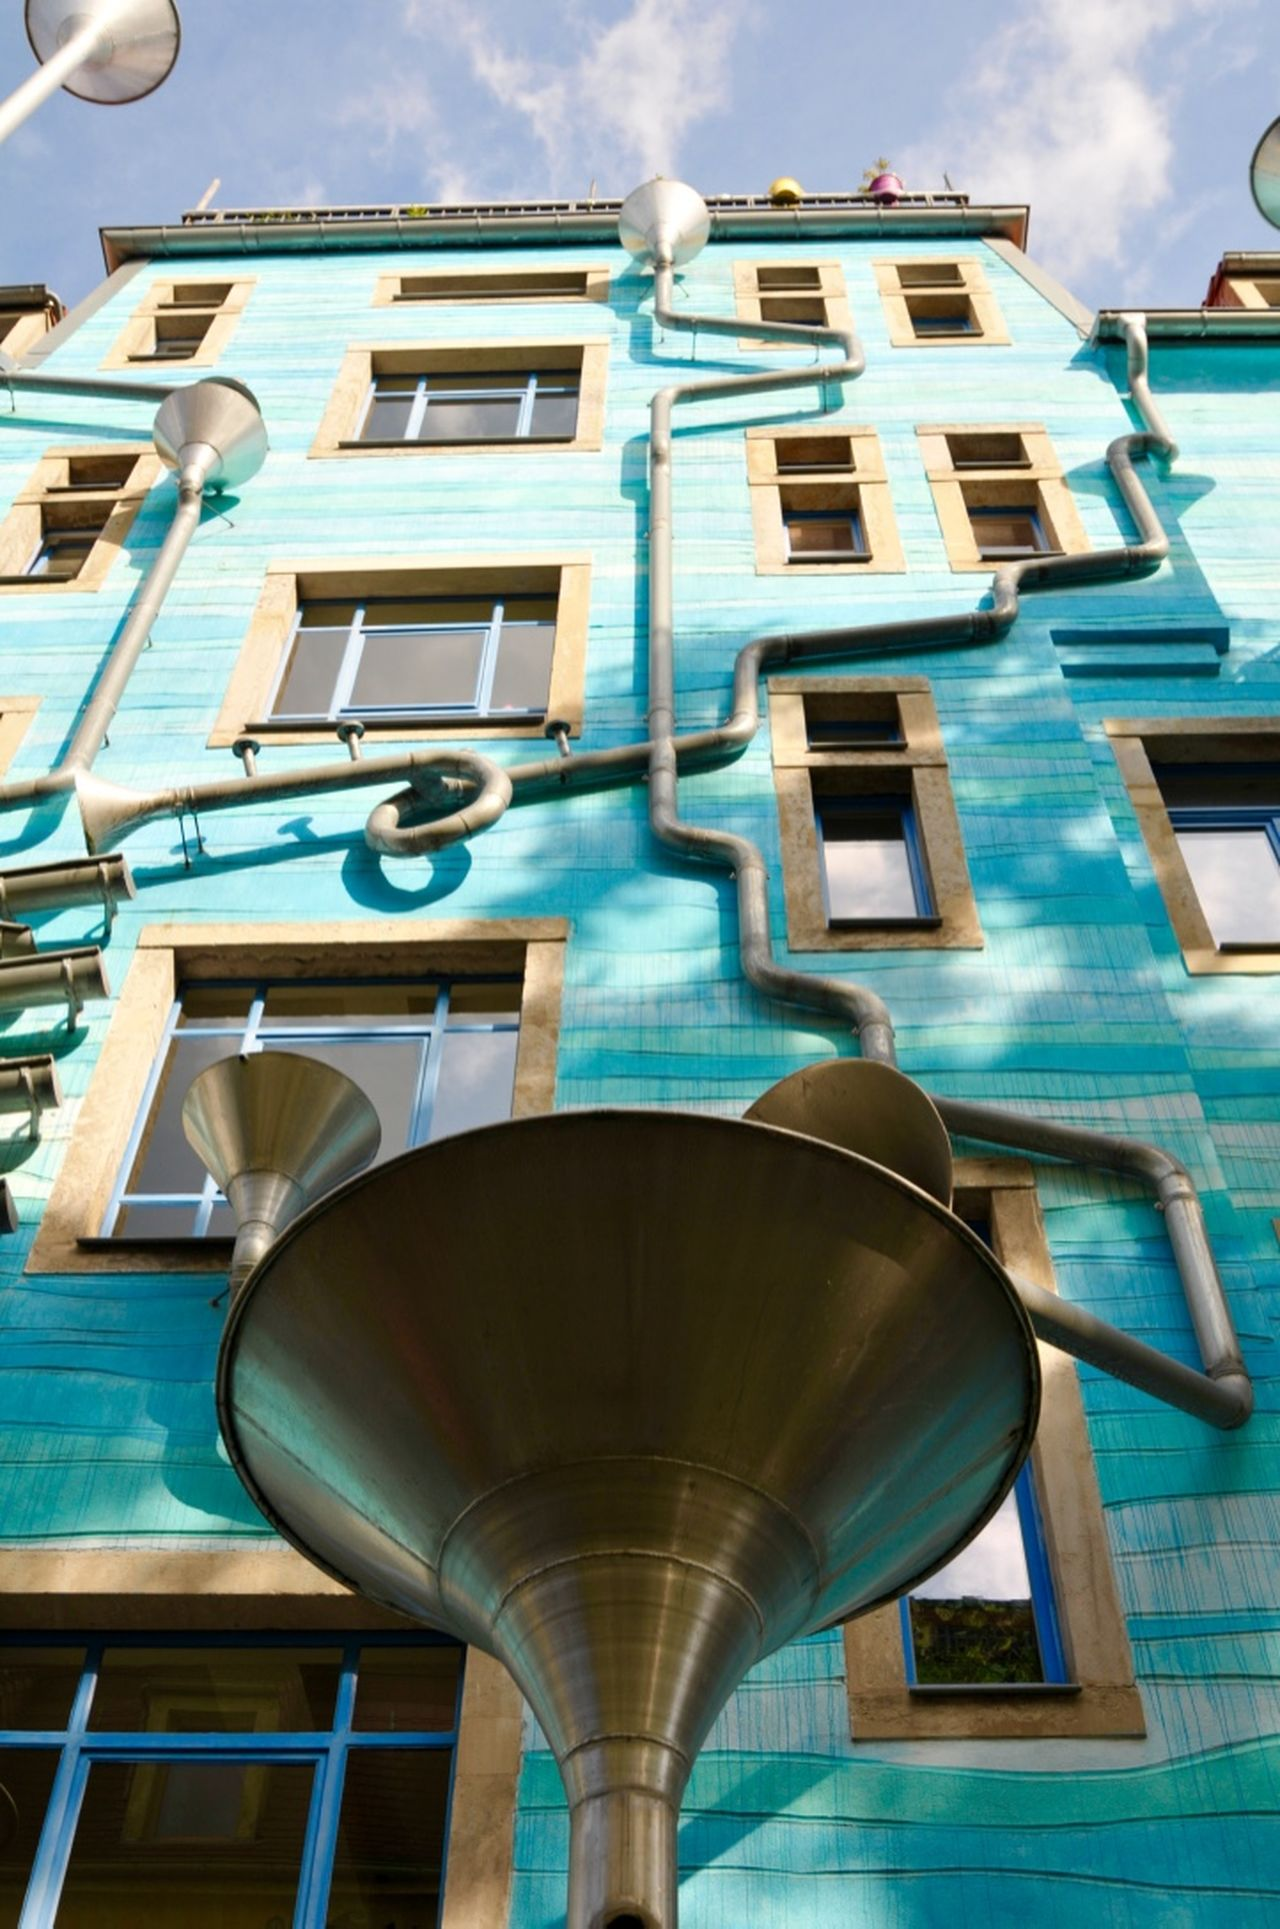 Architecture City Life Countryard Of Elements Kunsthofpassage Low Angle View Modern Musical Pipes Rain Singing In The Rain Traveling Water